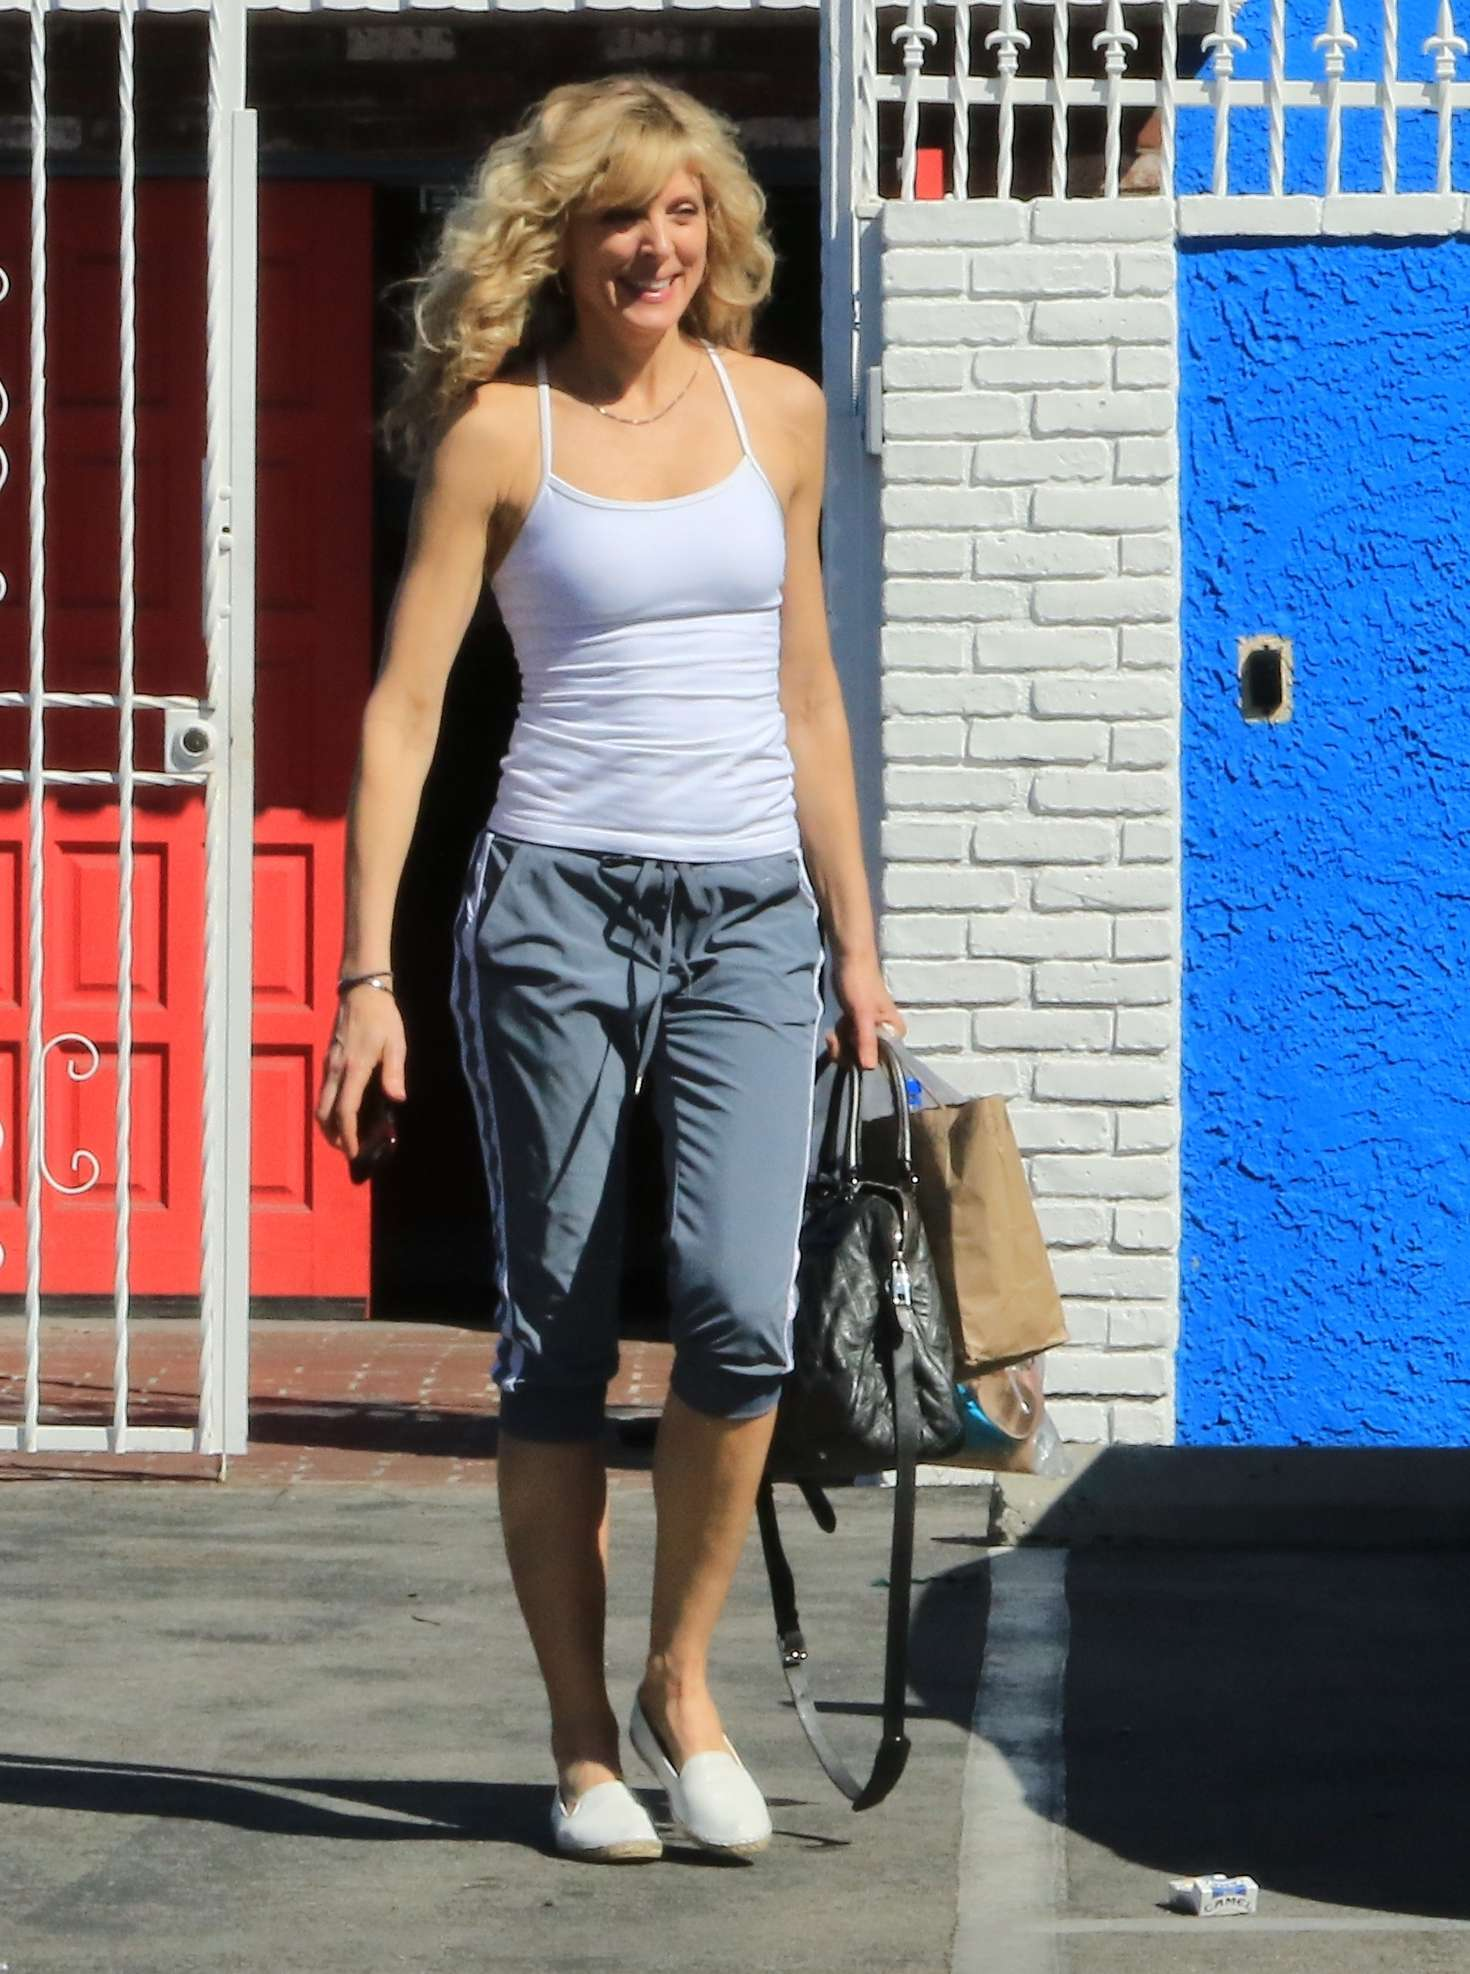 Marla Maples at DWTS Rehearsals in Hollywood - 1 : luvcelebs